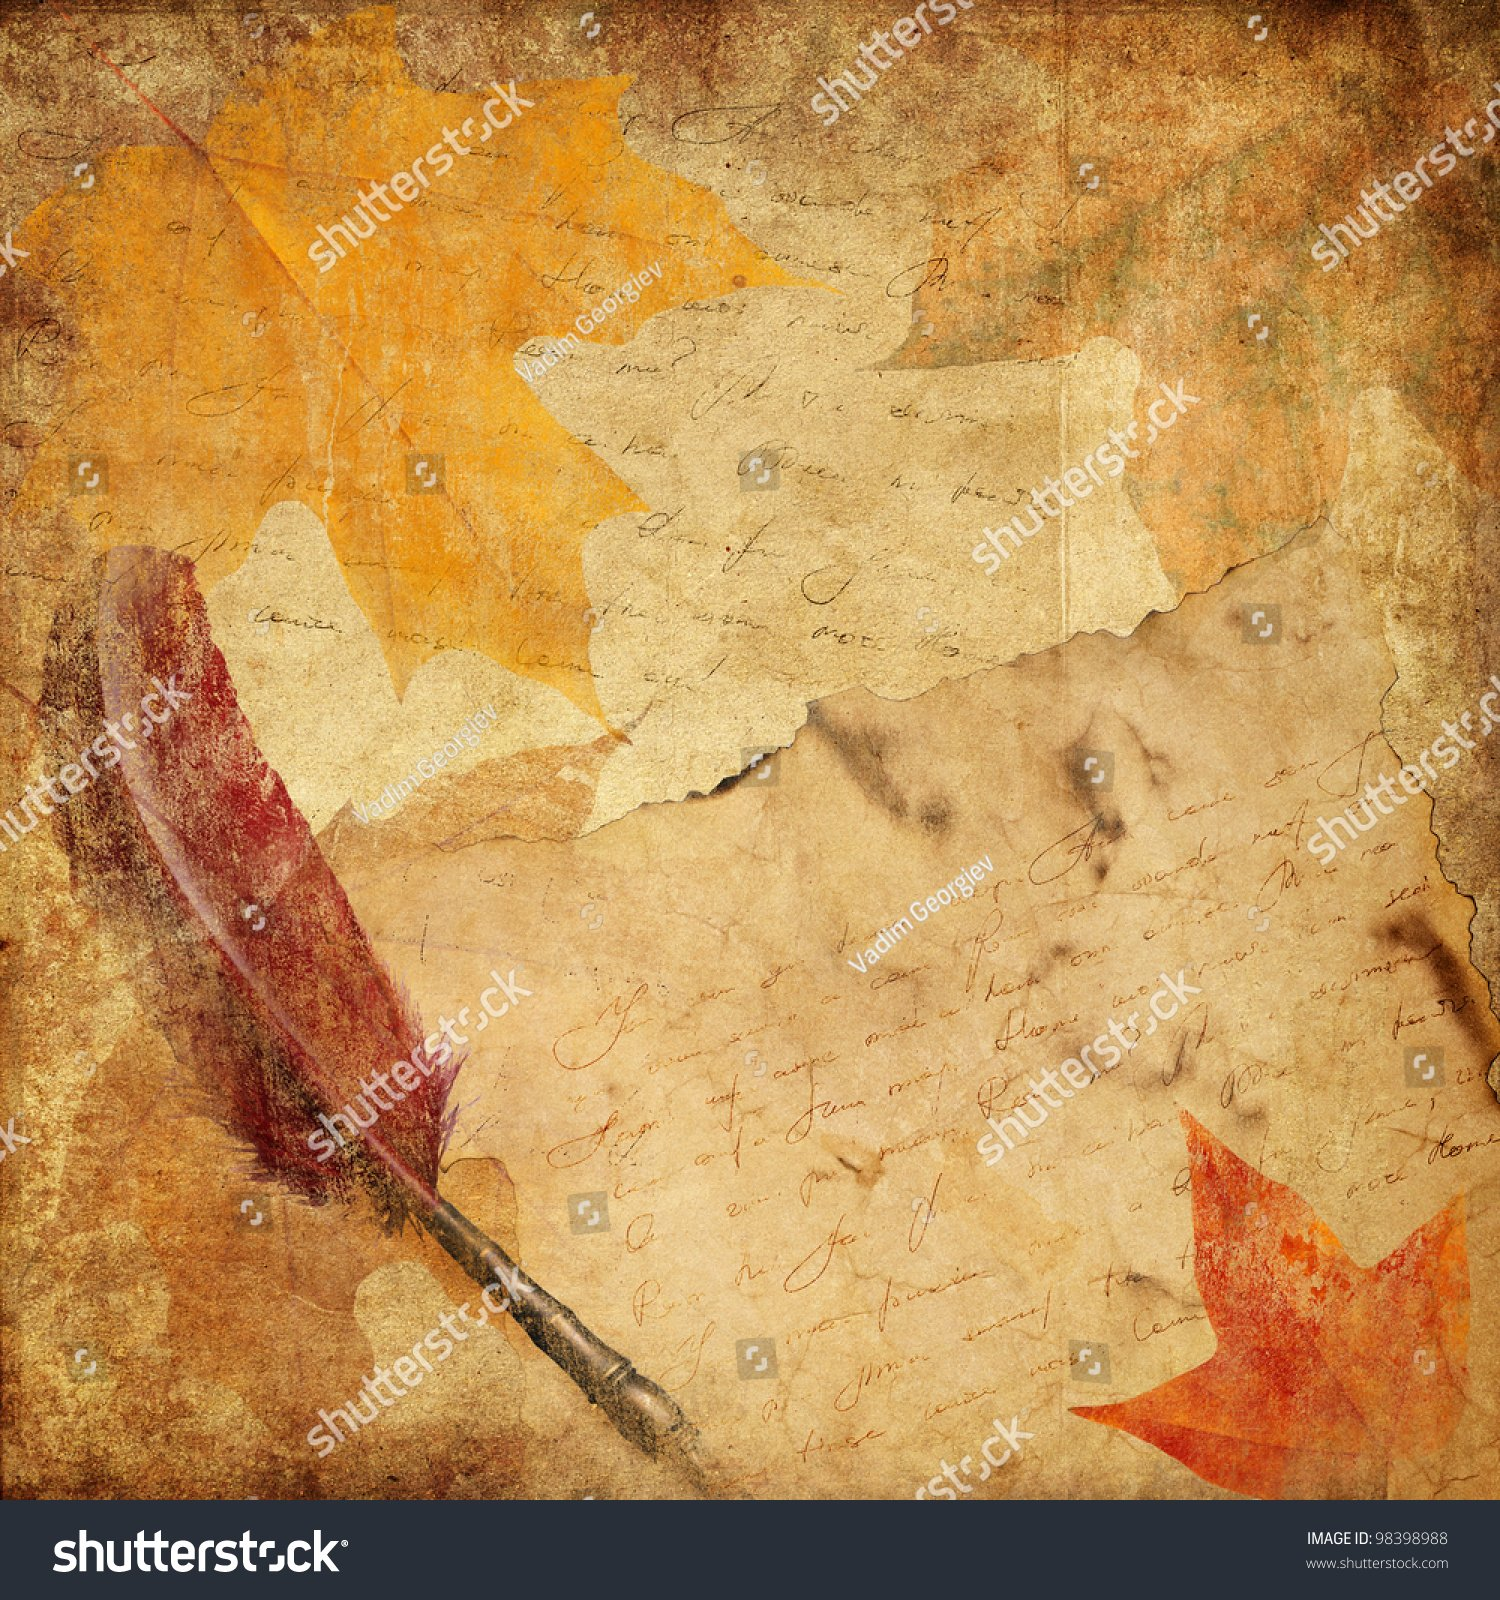 Vintage Background With Letter And Autumn Leaves Stock 1500x1600